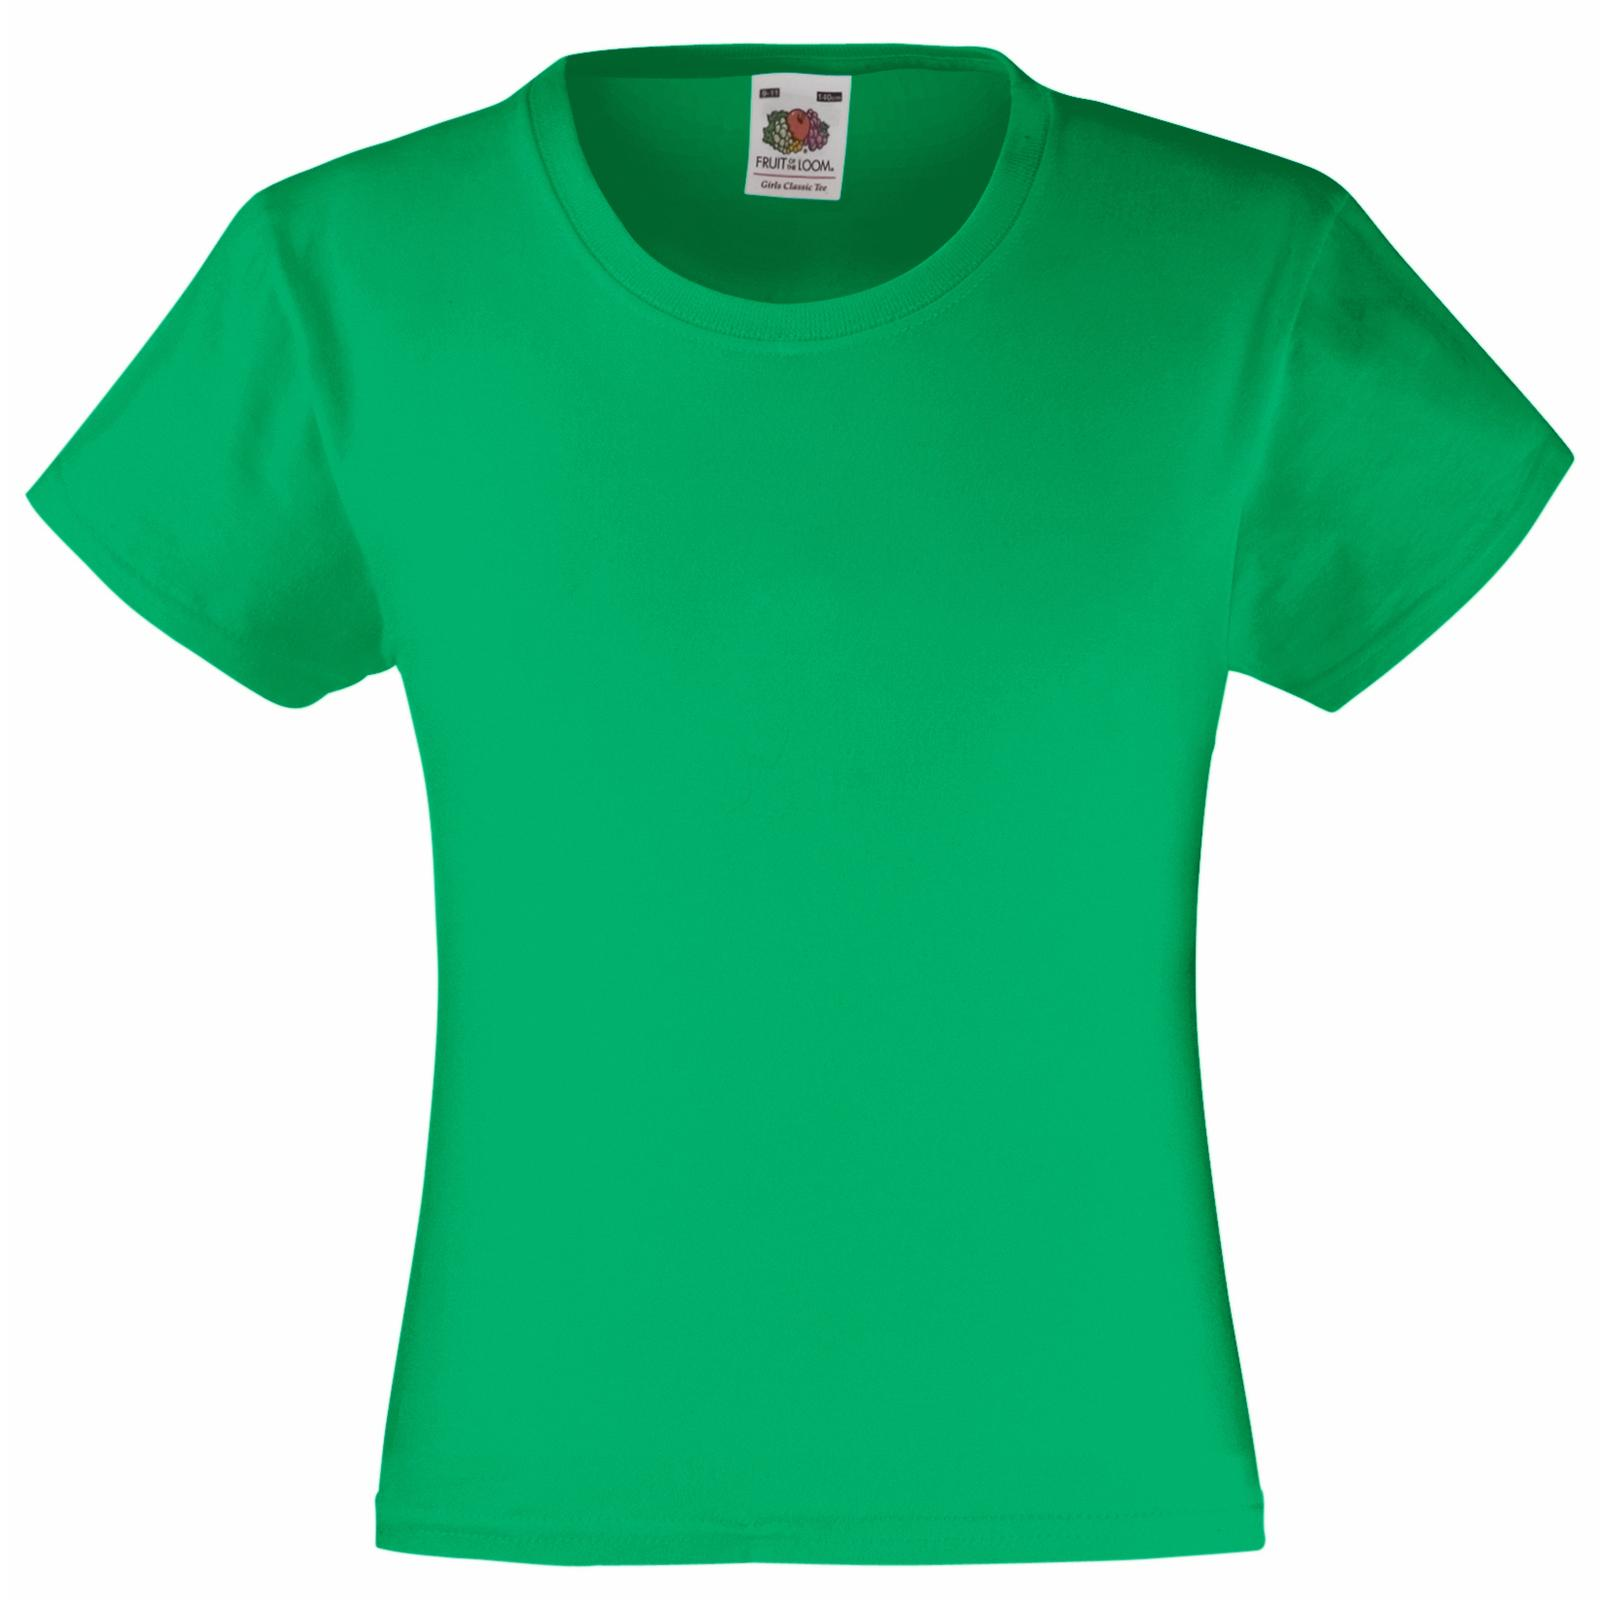 White Fruit of the Loom Girls Valueweight T-Shirt Pack of 5 Manufacturer Size:30 7-8 Years